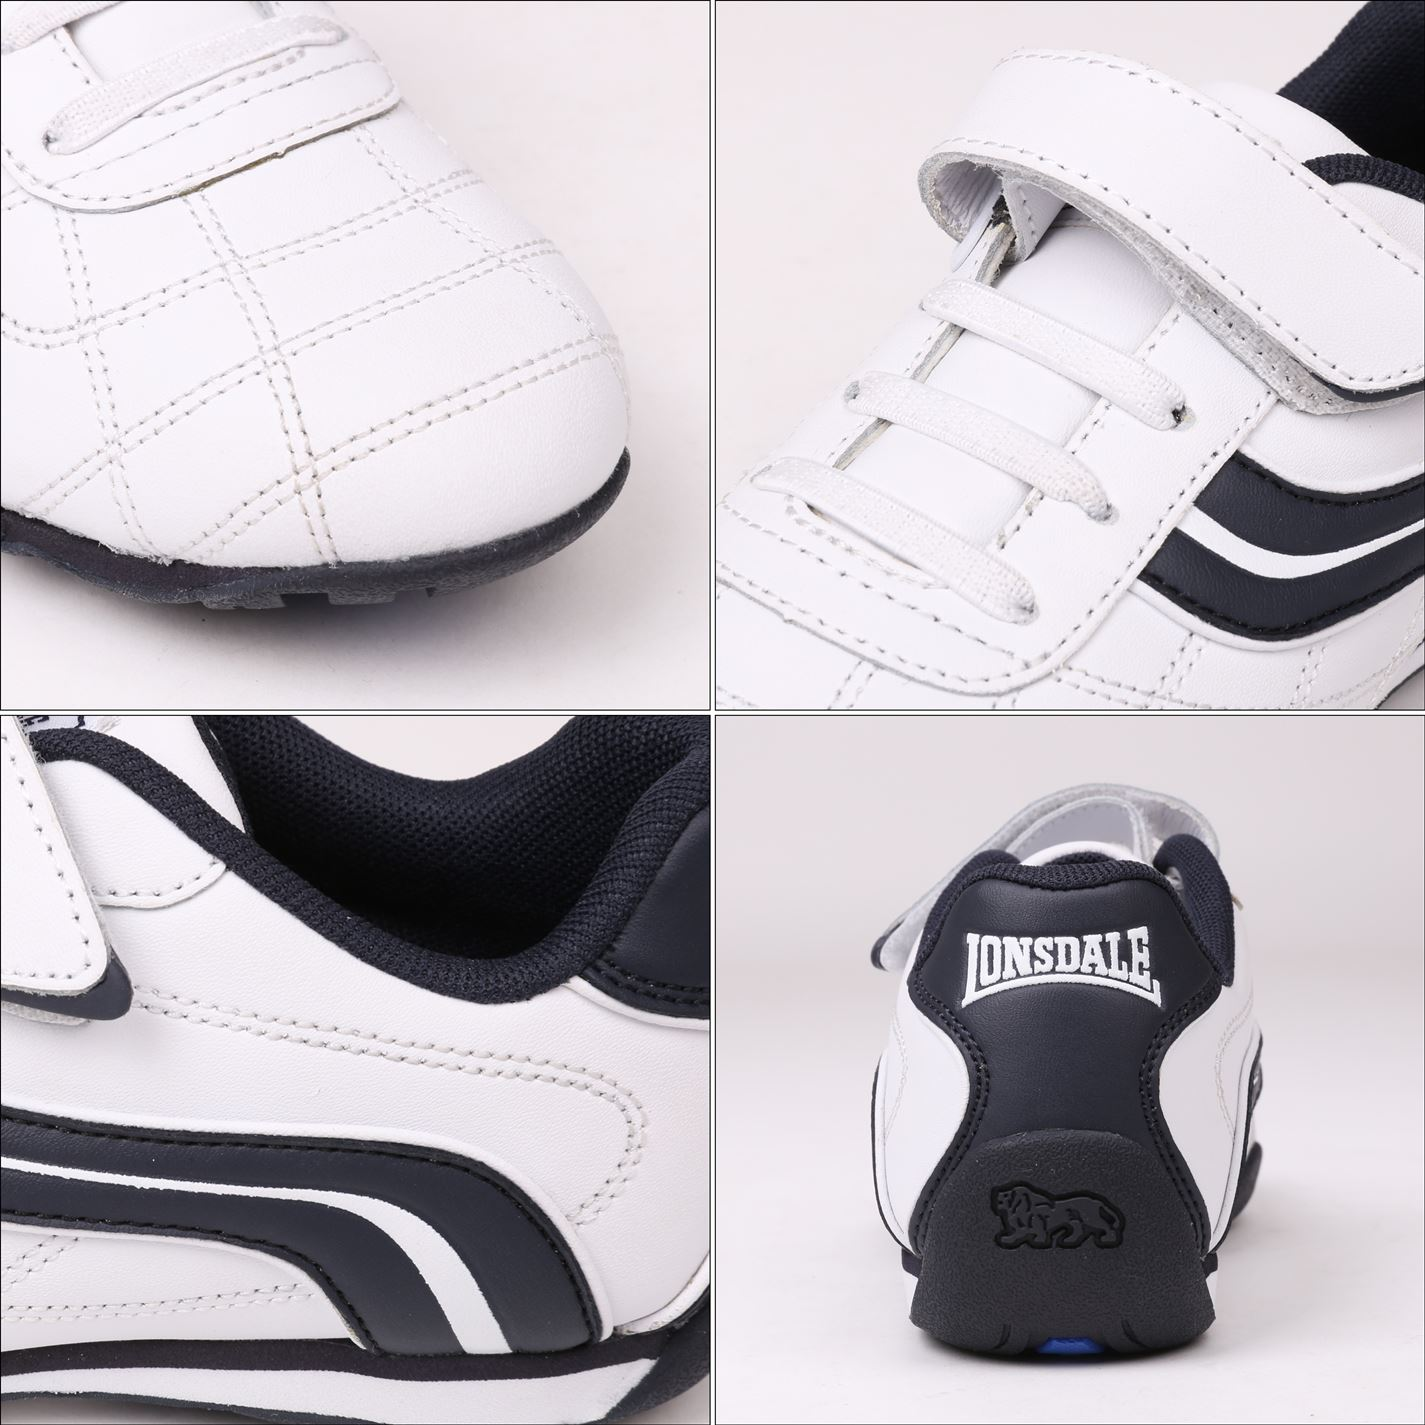 Lonsdale-Kids-Camden-Child-Boys-Trainers-Lace-Up-Casual-Sports-Shoes-Footwear thumbnail 37